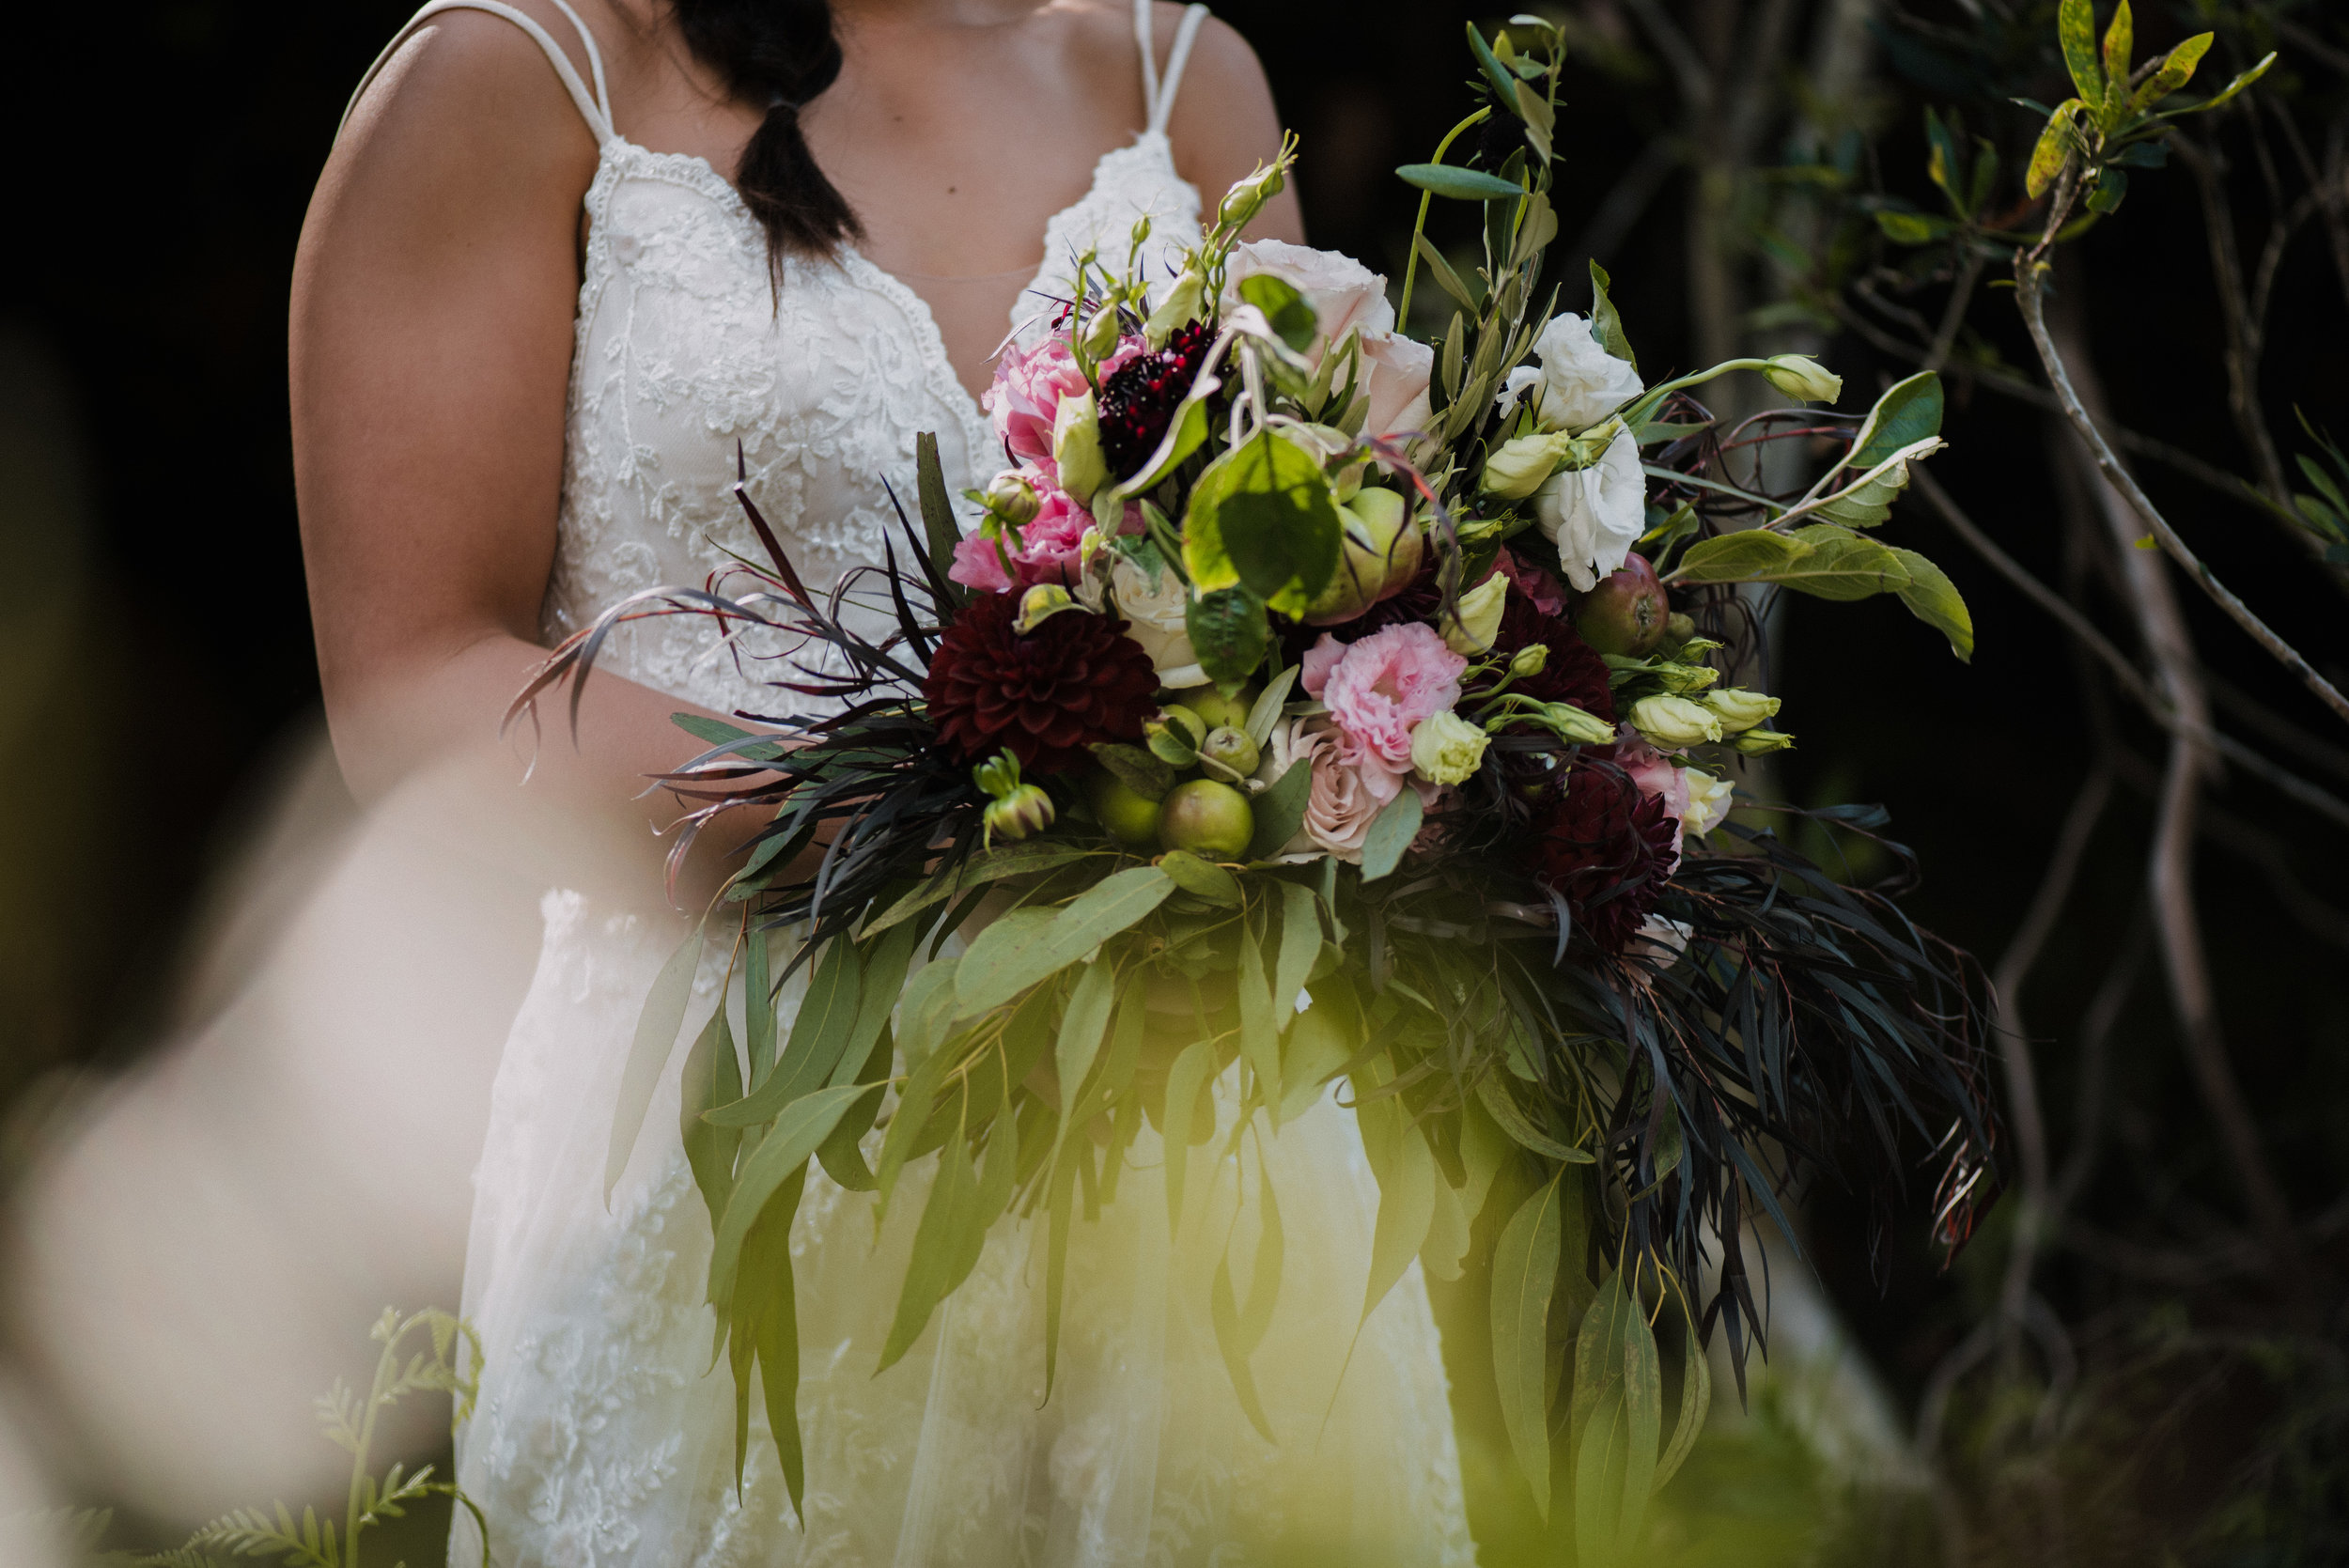 Nellies Glen Styled Shoot-031217-202.jpg